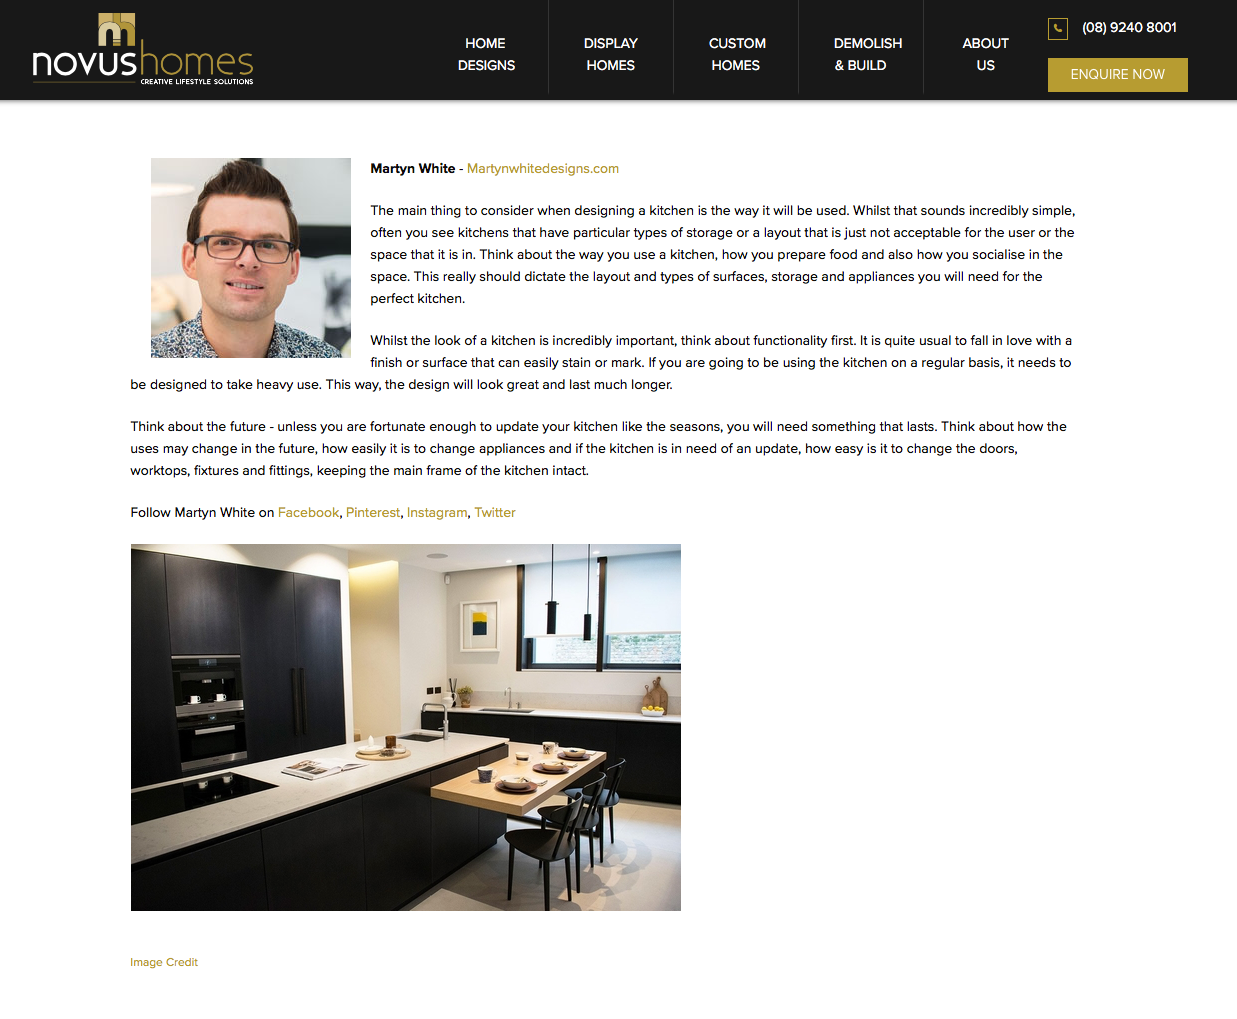 Martyn White Designs Novus Homes Kitchen Advice